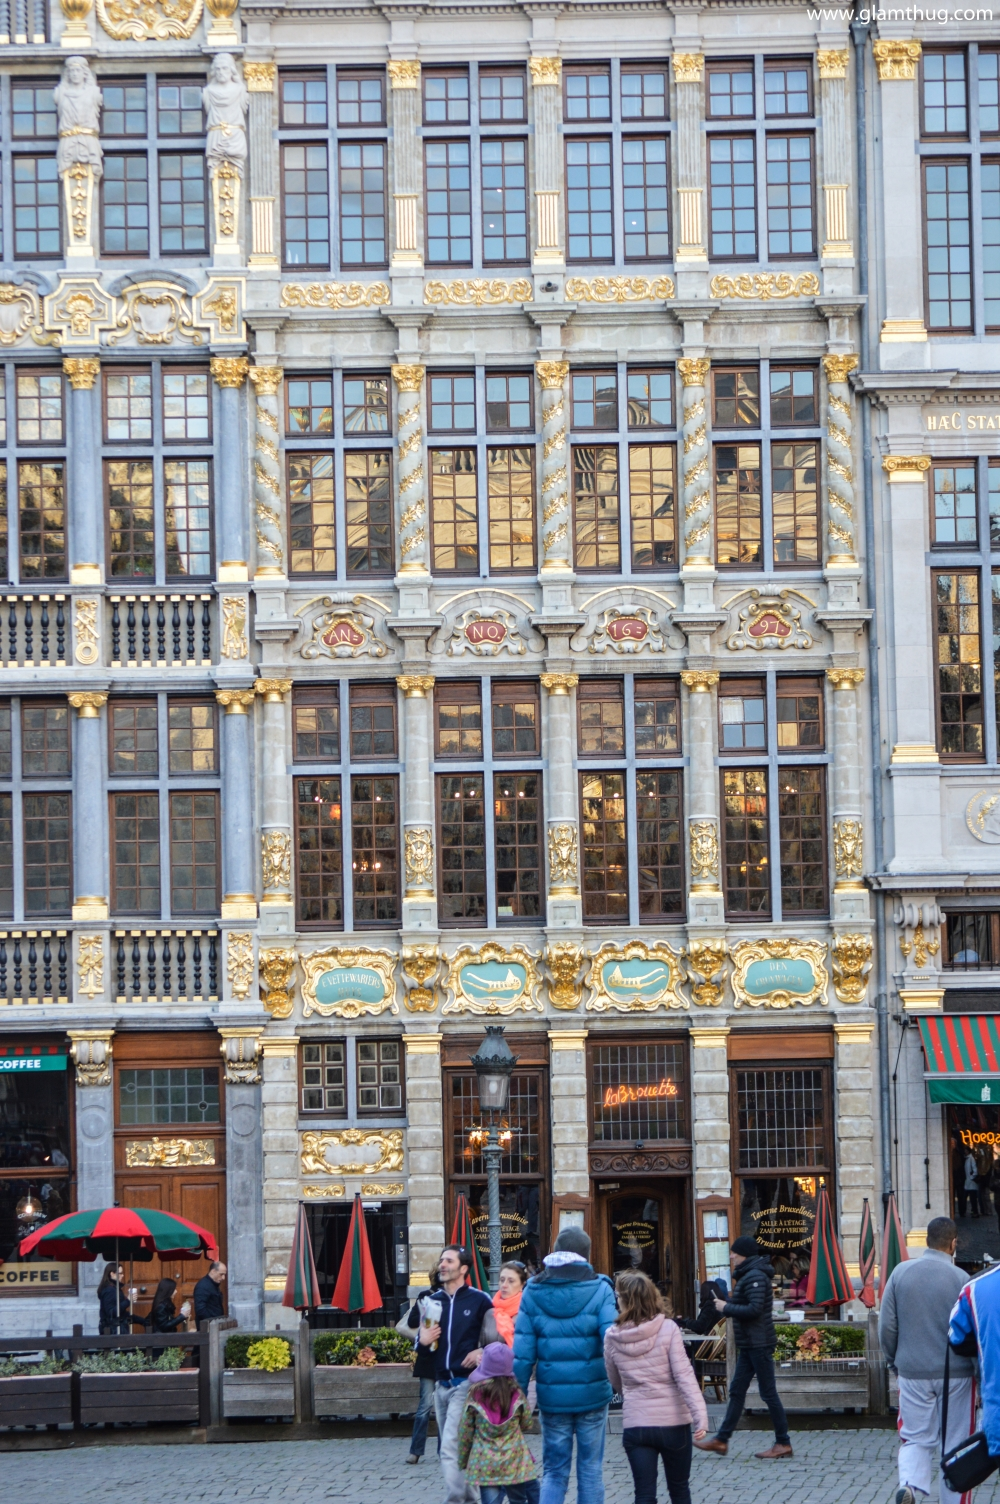 grand place brussels, best place in brussels, architecture in brussels, visit bruxelles, what to do in brussels,glamthug blog, 10 reasons to love Brussels